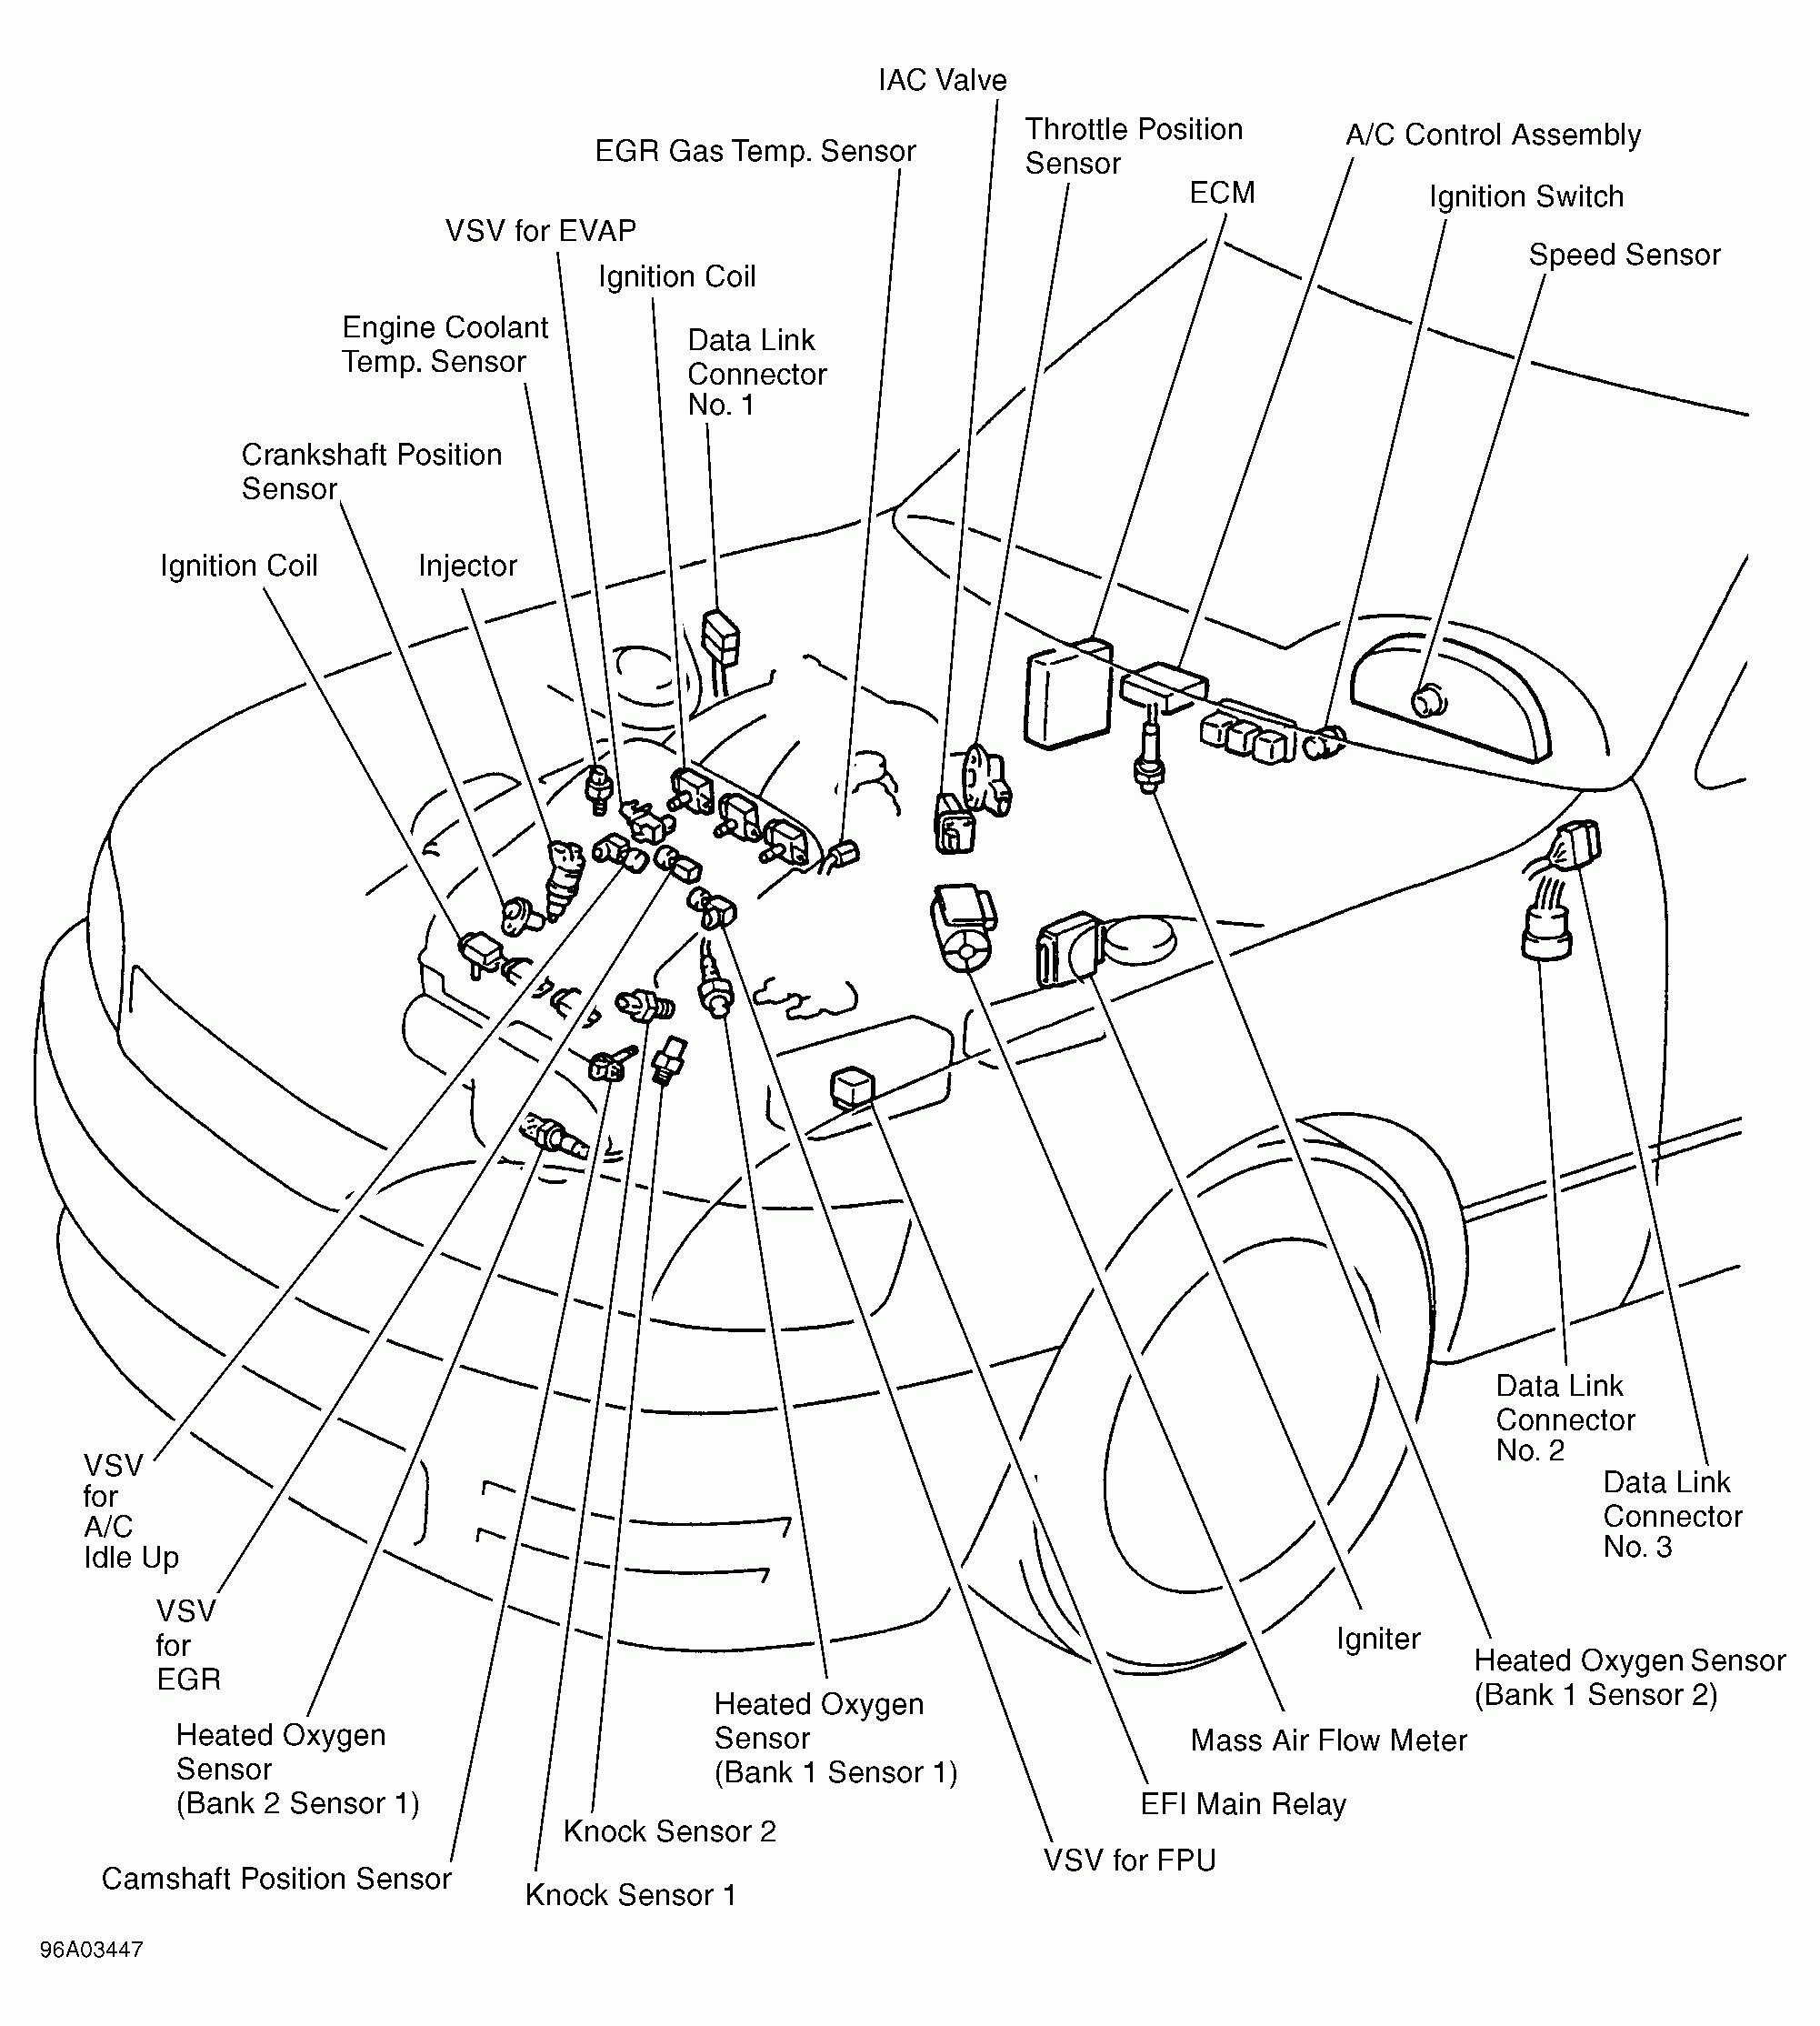 200 Pt Cruiser Engine Diagram Reinvent Your Wiring 2005 Chrysler Town And Country Blower Motor Tcm Diagrams Schematics Rh Ssl Forum Com 2003 2 4 Turbo Intake